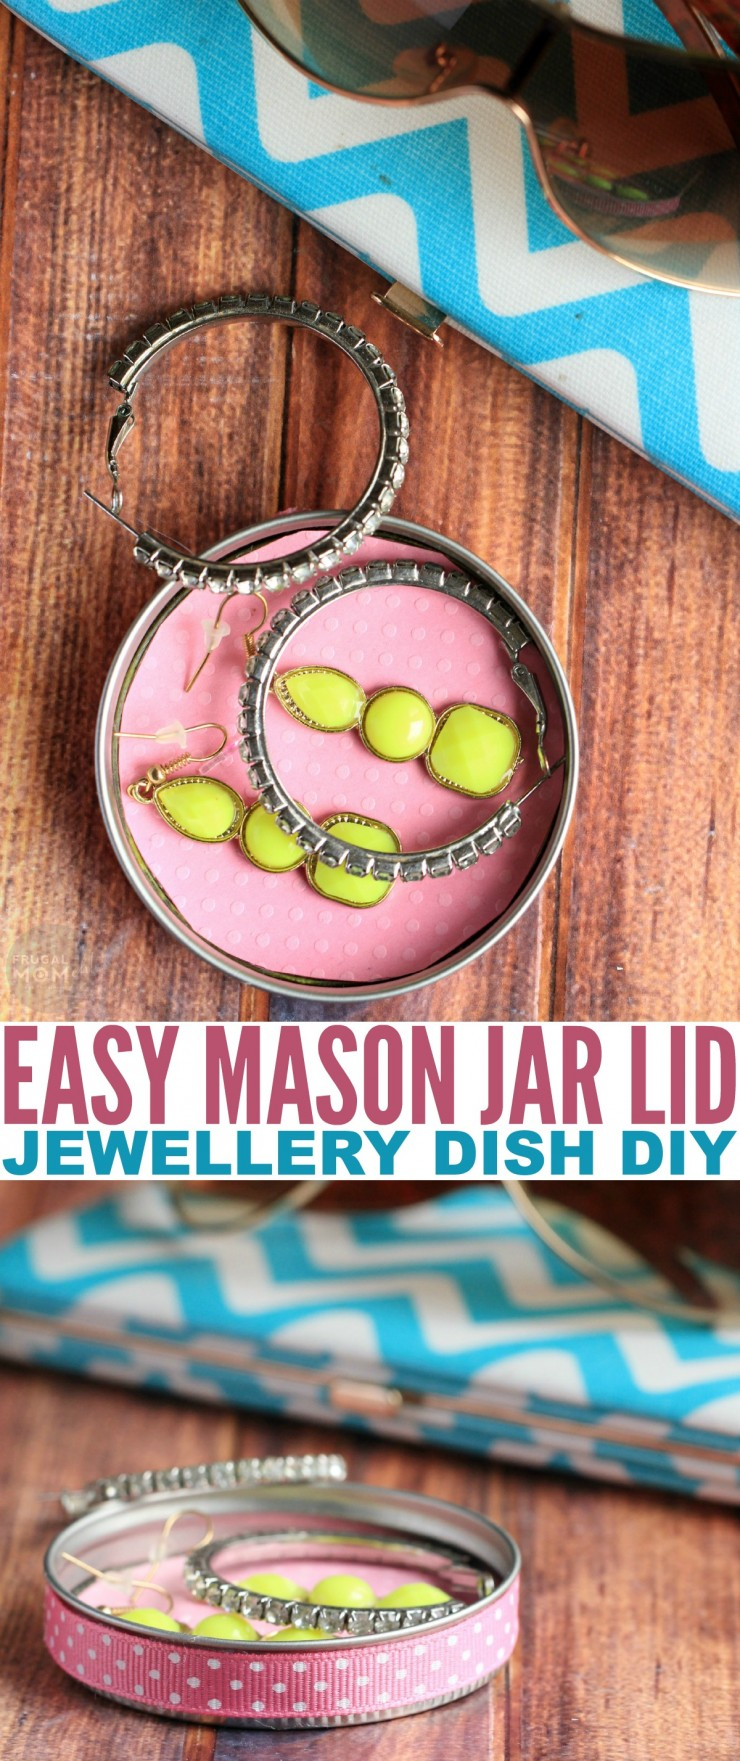 This Easy Mason Jar Lid Jewelry Dish DIY is a fun craft for kids to make for a simple but useful mother's day gift on a budget.